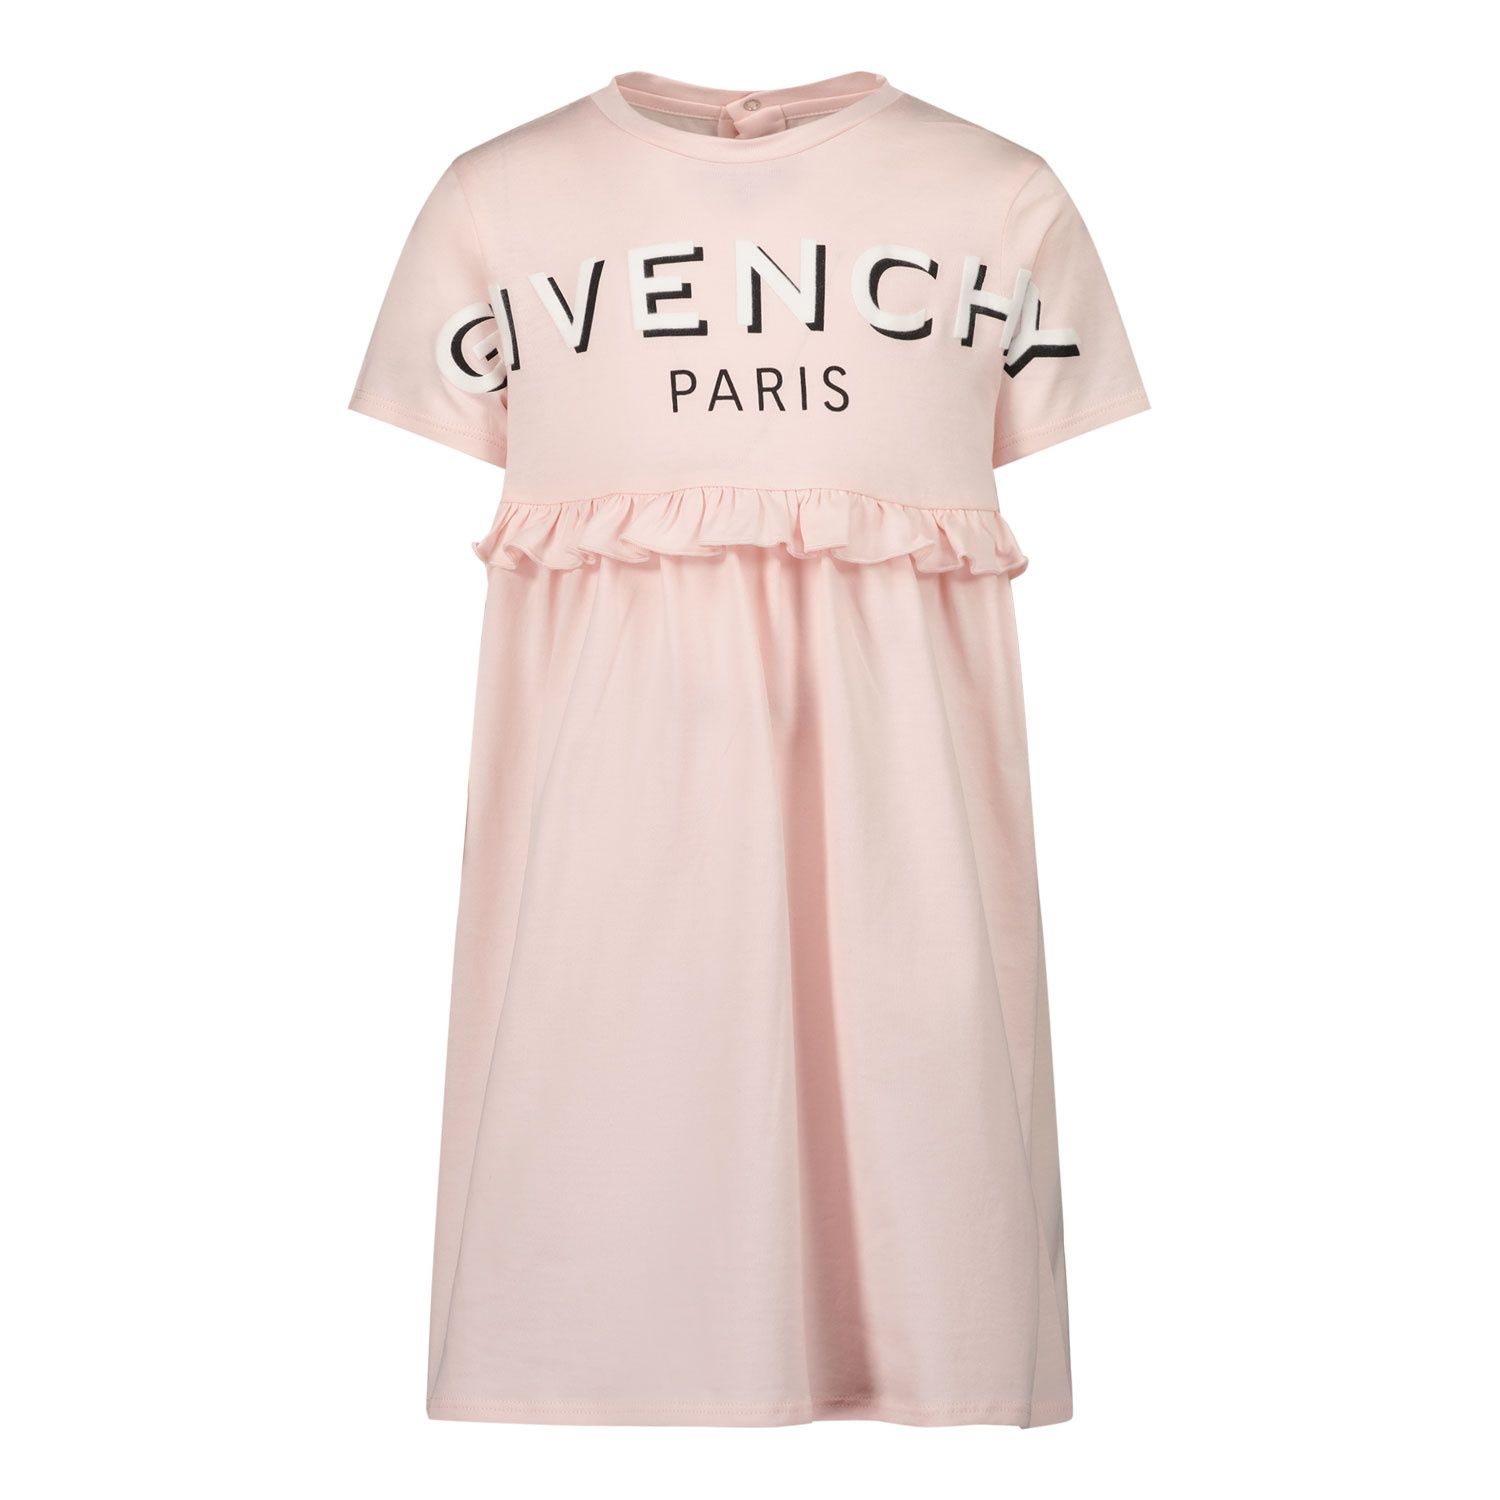 Picture of Givenchy H02075 baby dress light pink